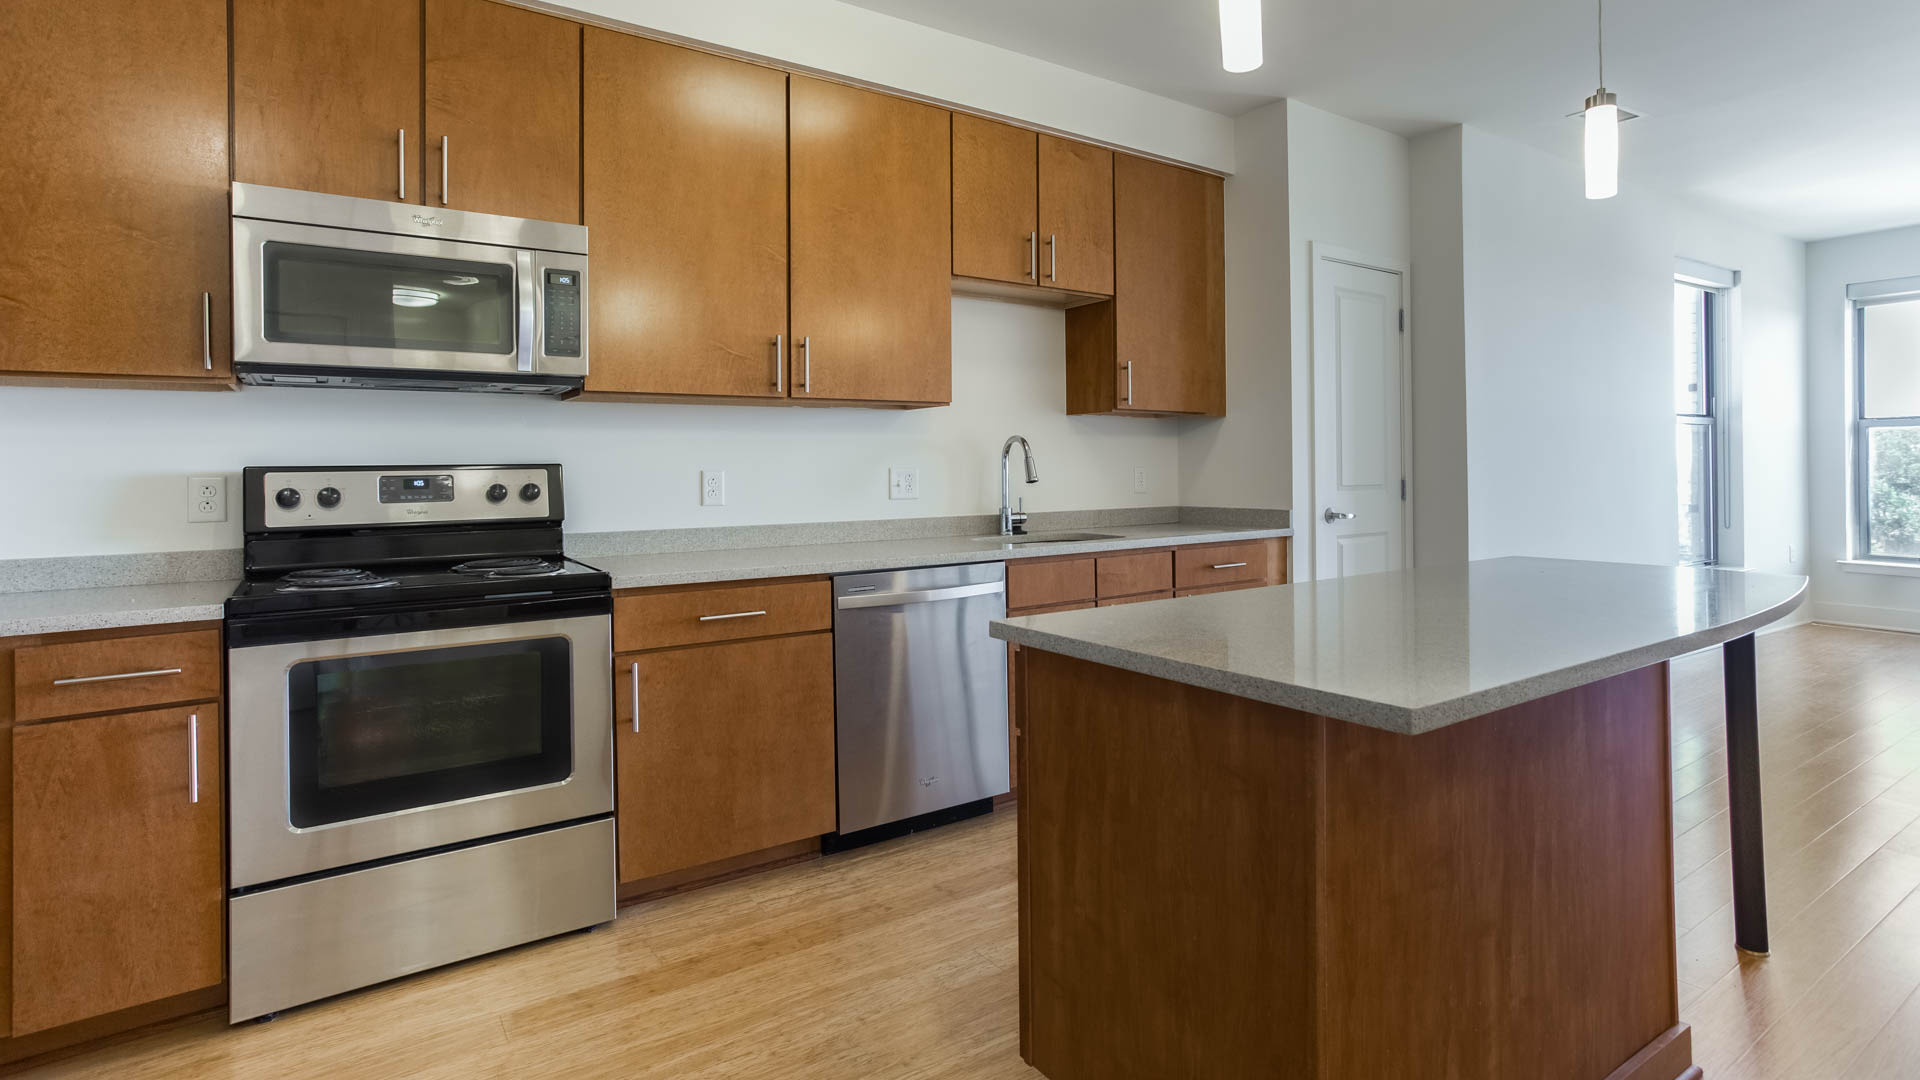 2201 Pershing Apartments in Courthouse, Arlington - 2201 ...